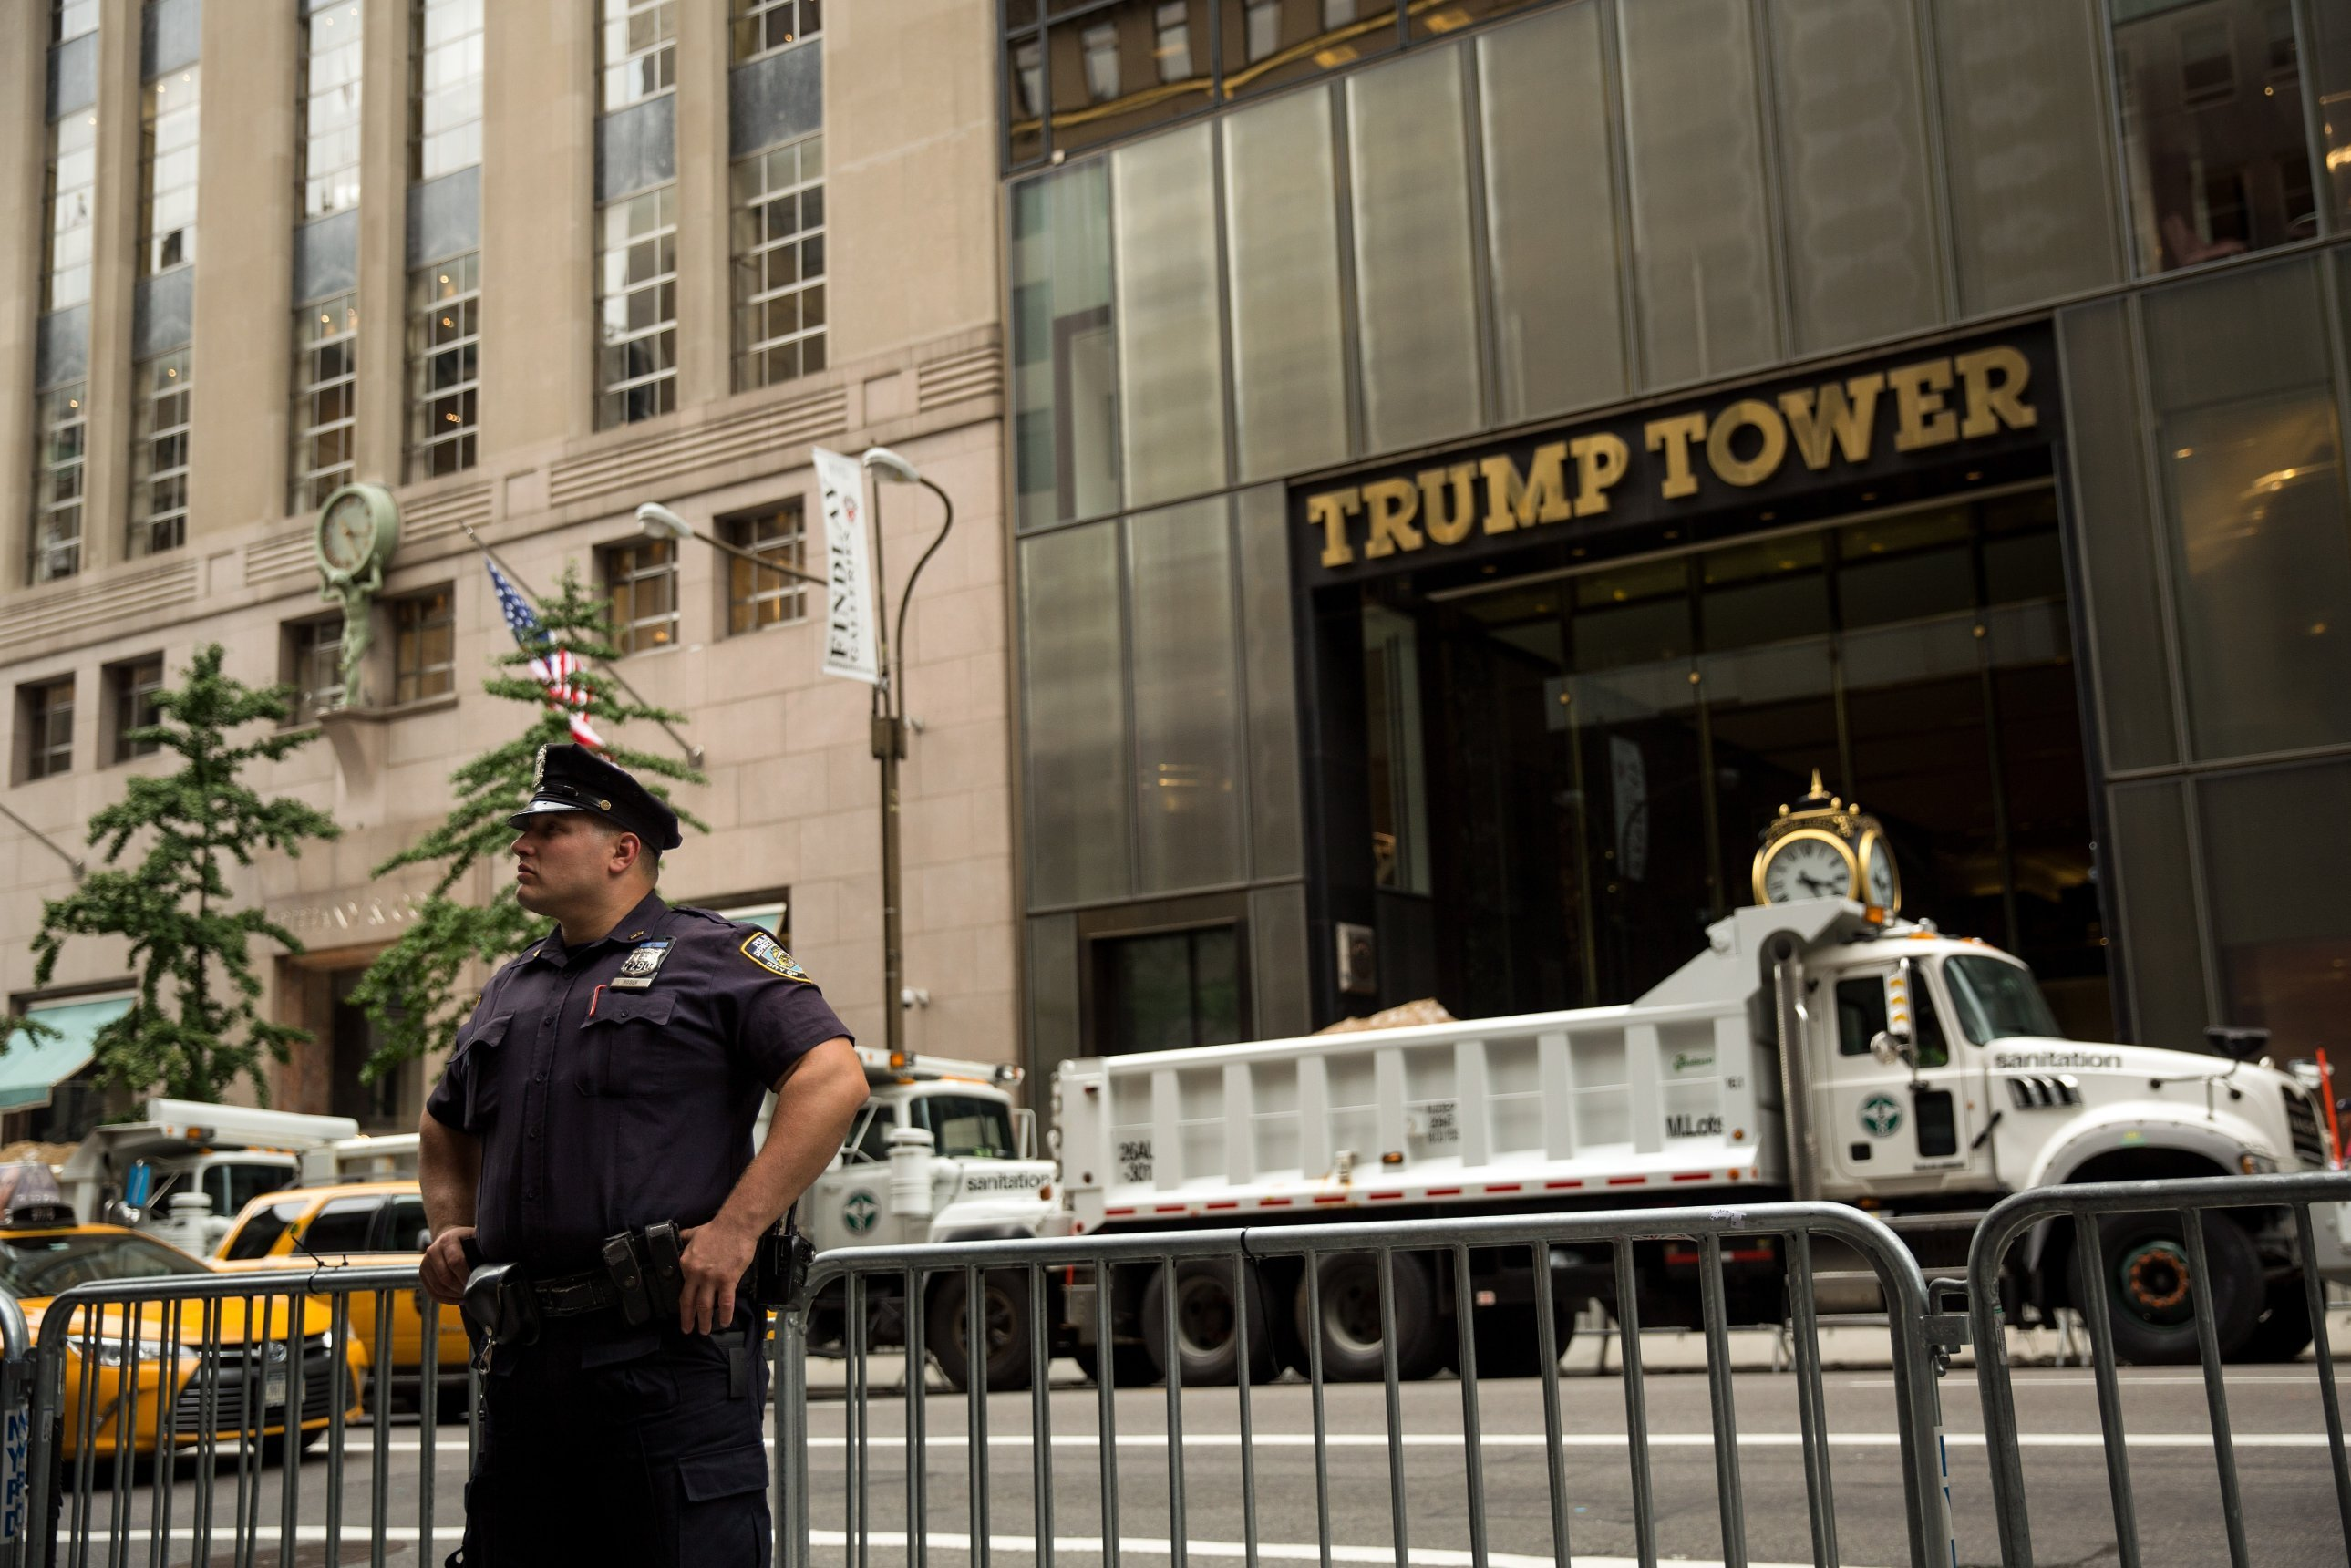 New York police are investigating thefts of jewelry worth over $350,000 from Trump Tower